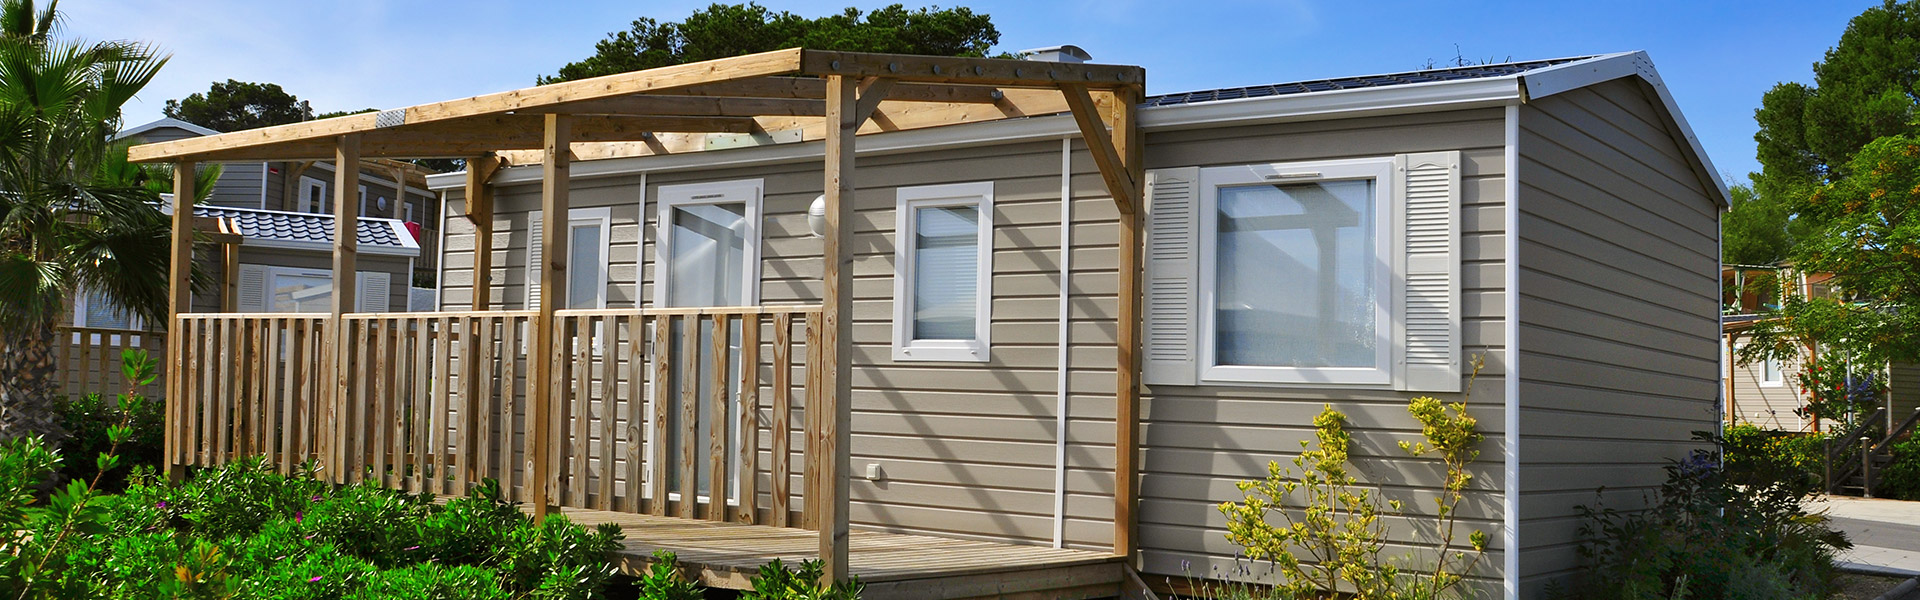 Mobile Home Repair, Parts & Service Company in Lansing, MI on mobile funeral services, mobile coffee, mobile hair salon, mobile web design, providence home services,